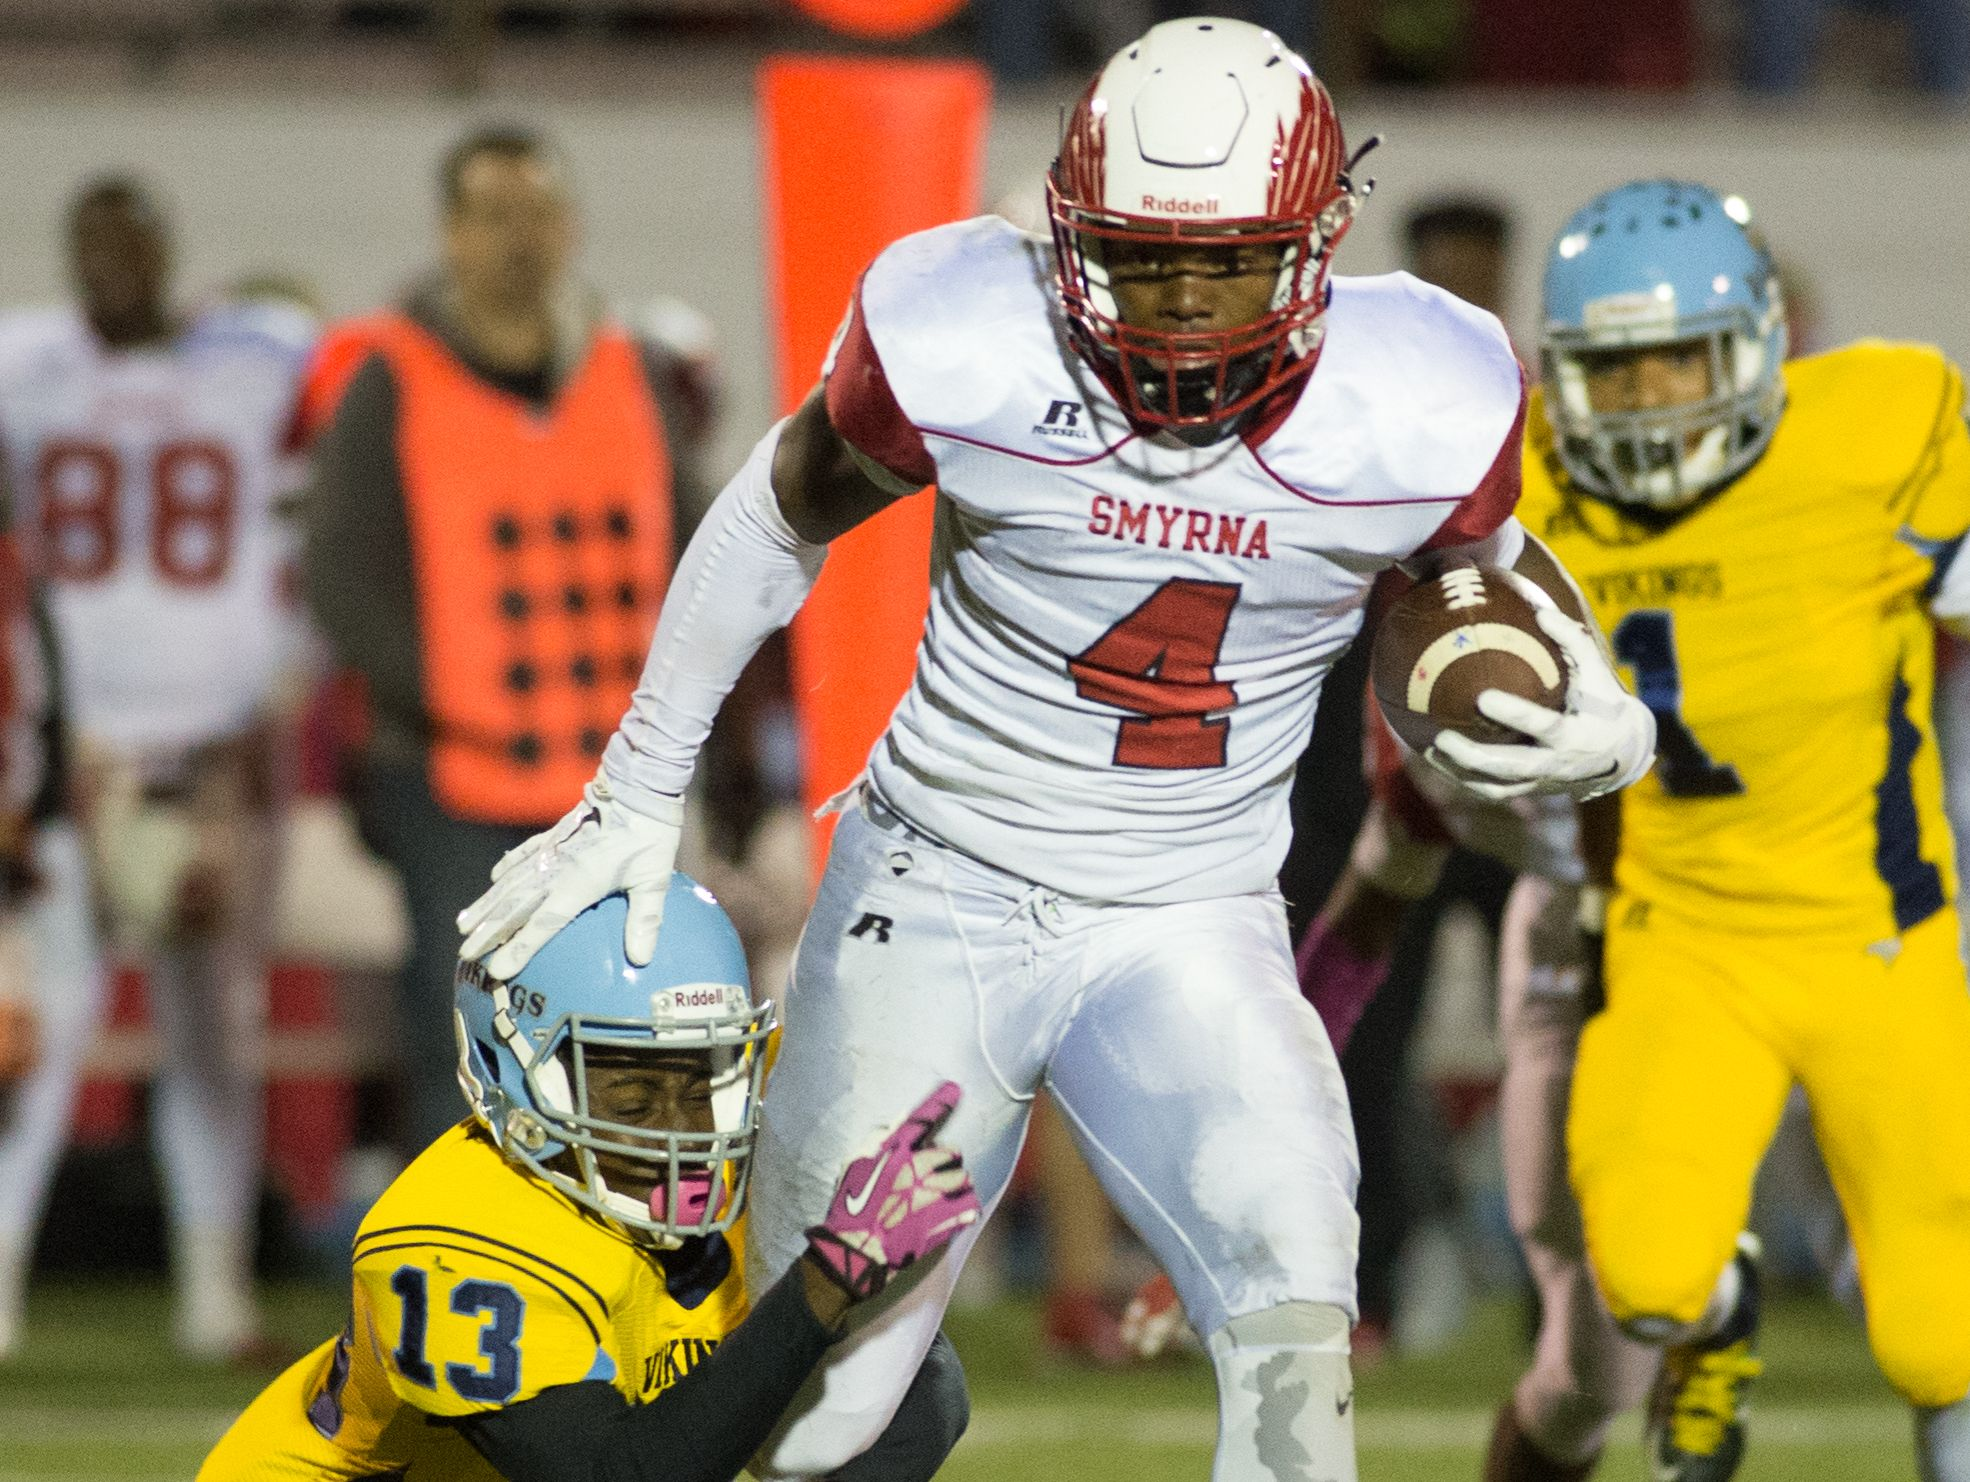 Cape Henlopen's Keith Mumford-Reed (13) makes a tackle on Smyrna's Leddie Brown (4).